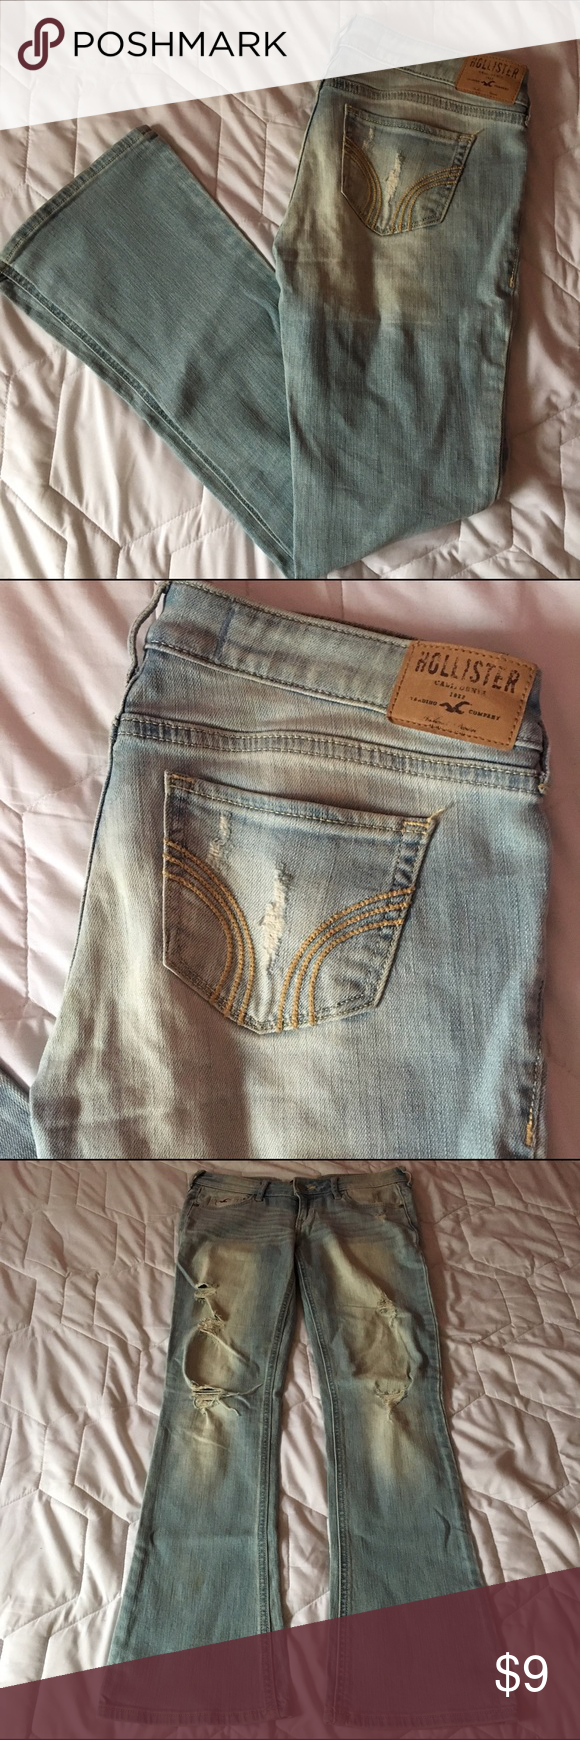 Hollister Light Wash Distressed Boot Cut Jeans light wash jeans from hollister with rips. well worn and has a mark on the bottom left leg that could come out with another wash or using a stain stick Hollister Jeans